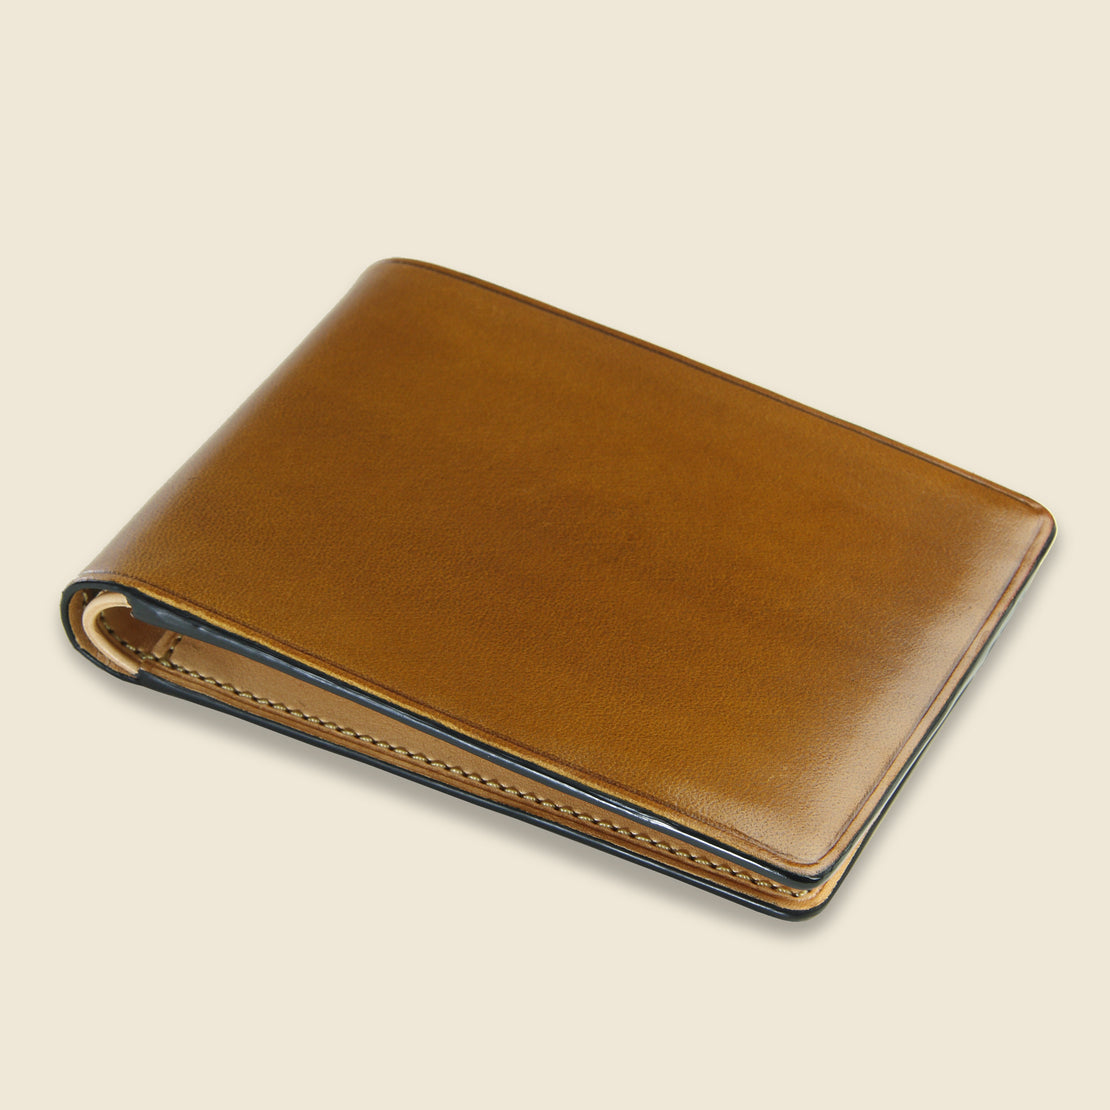 Small Bi-Fold Wallet - Light Brown - Il Bussetto - STAG Provisions - Accessories - Wallets